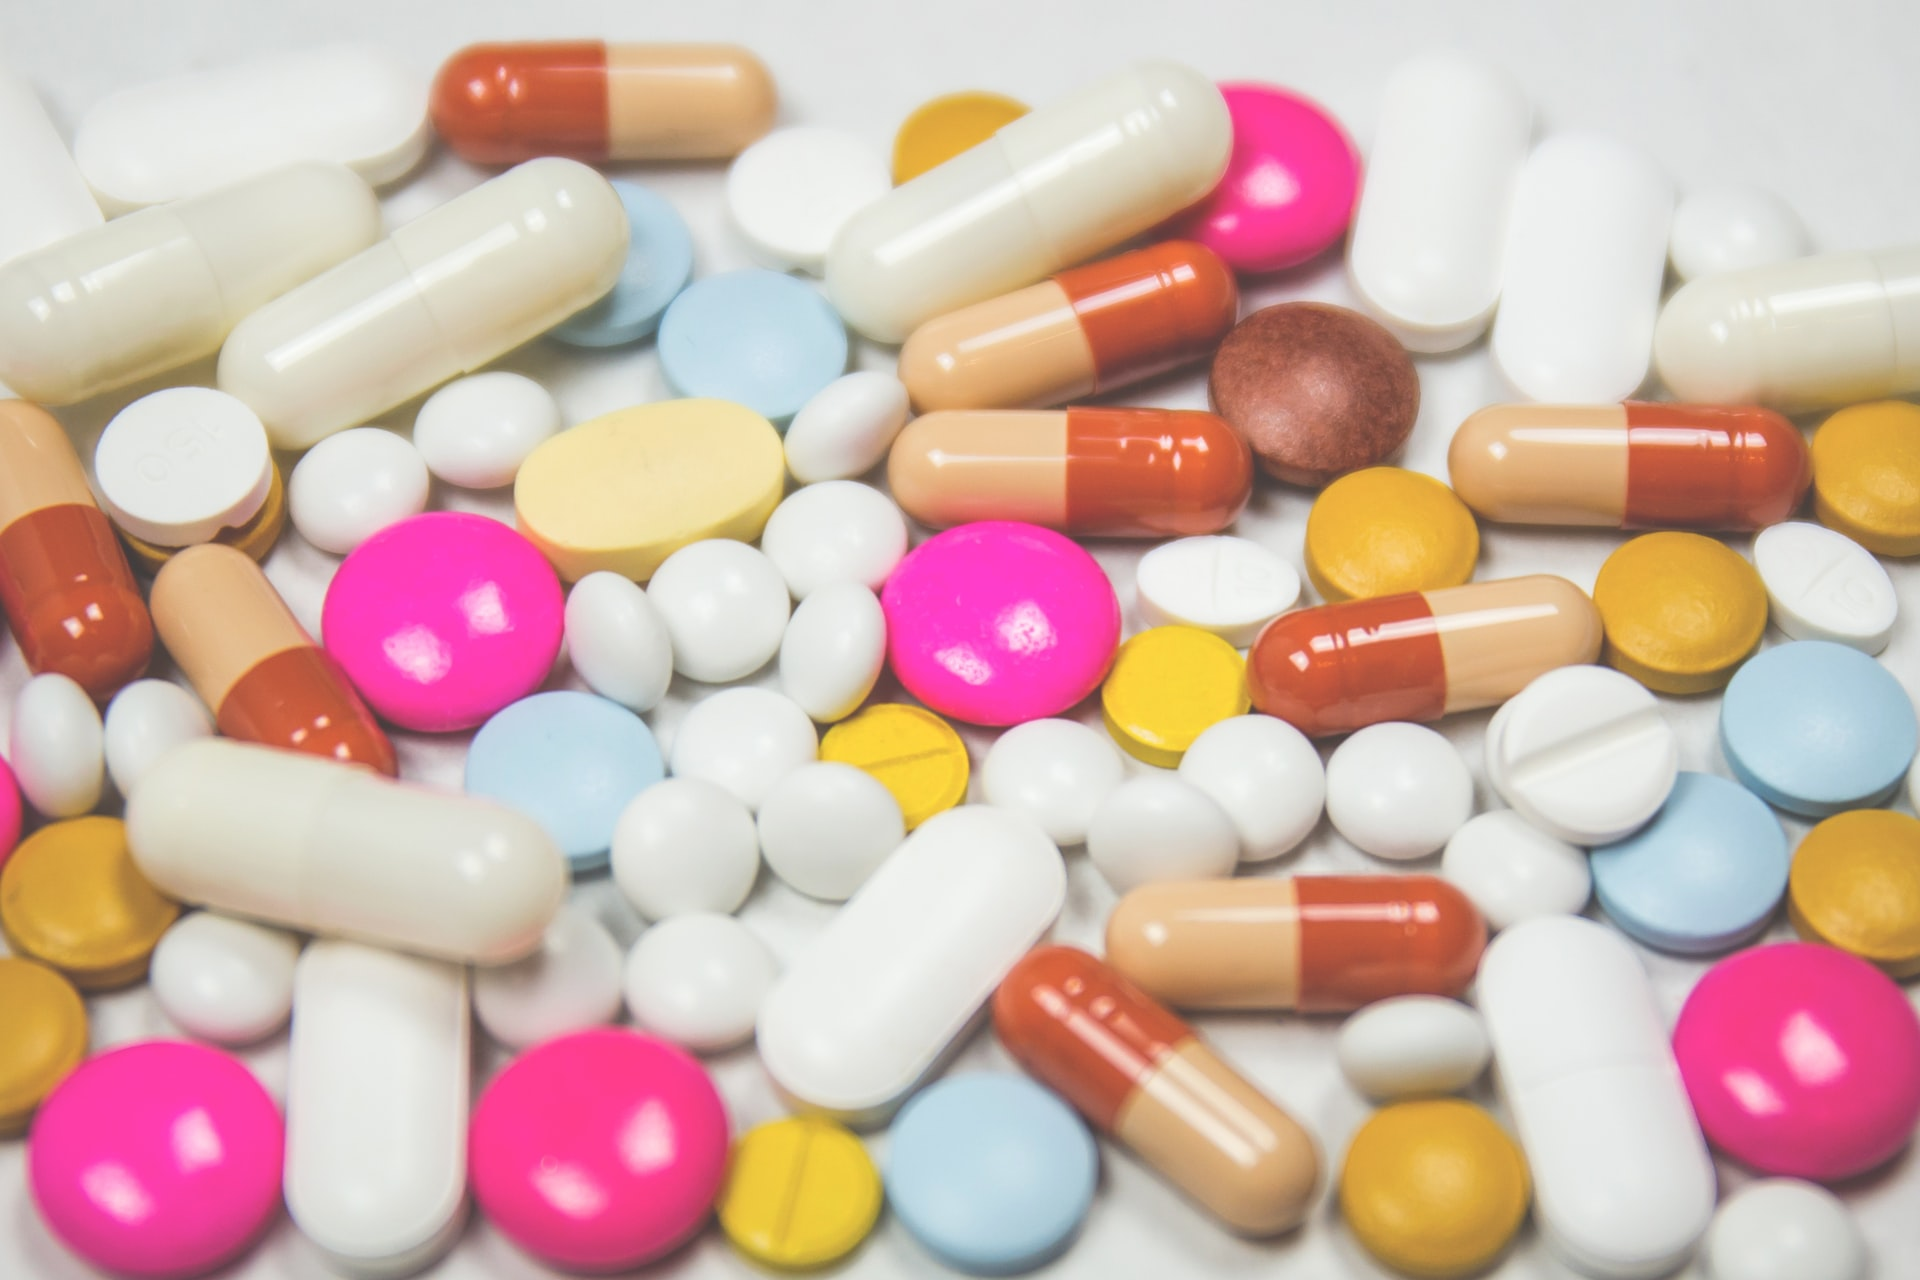 Could drug price regulation produce good and not harm?